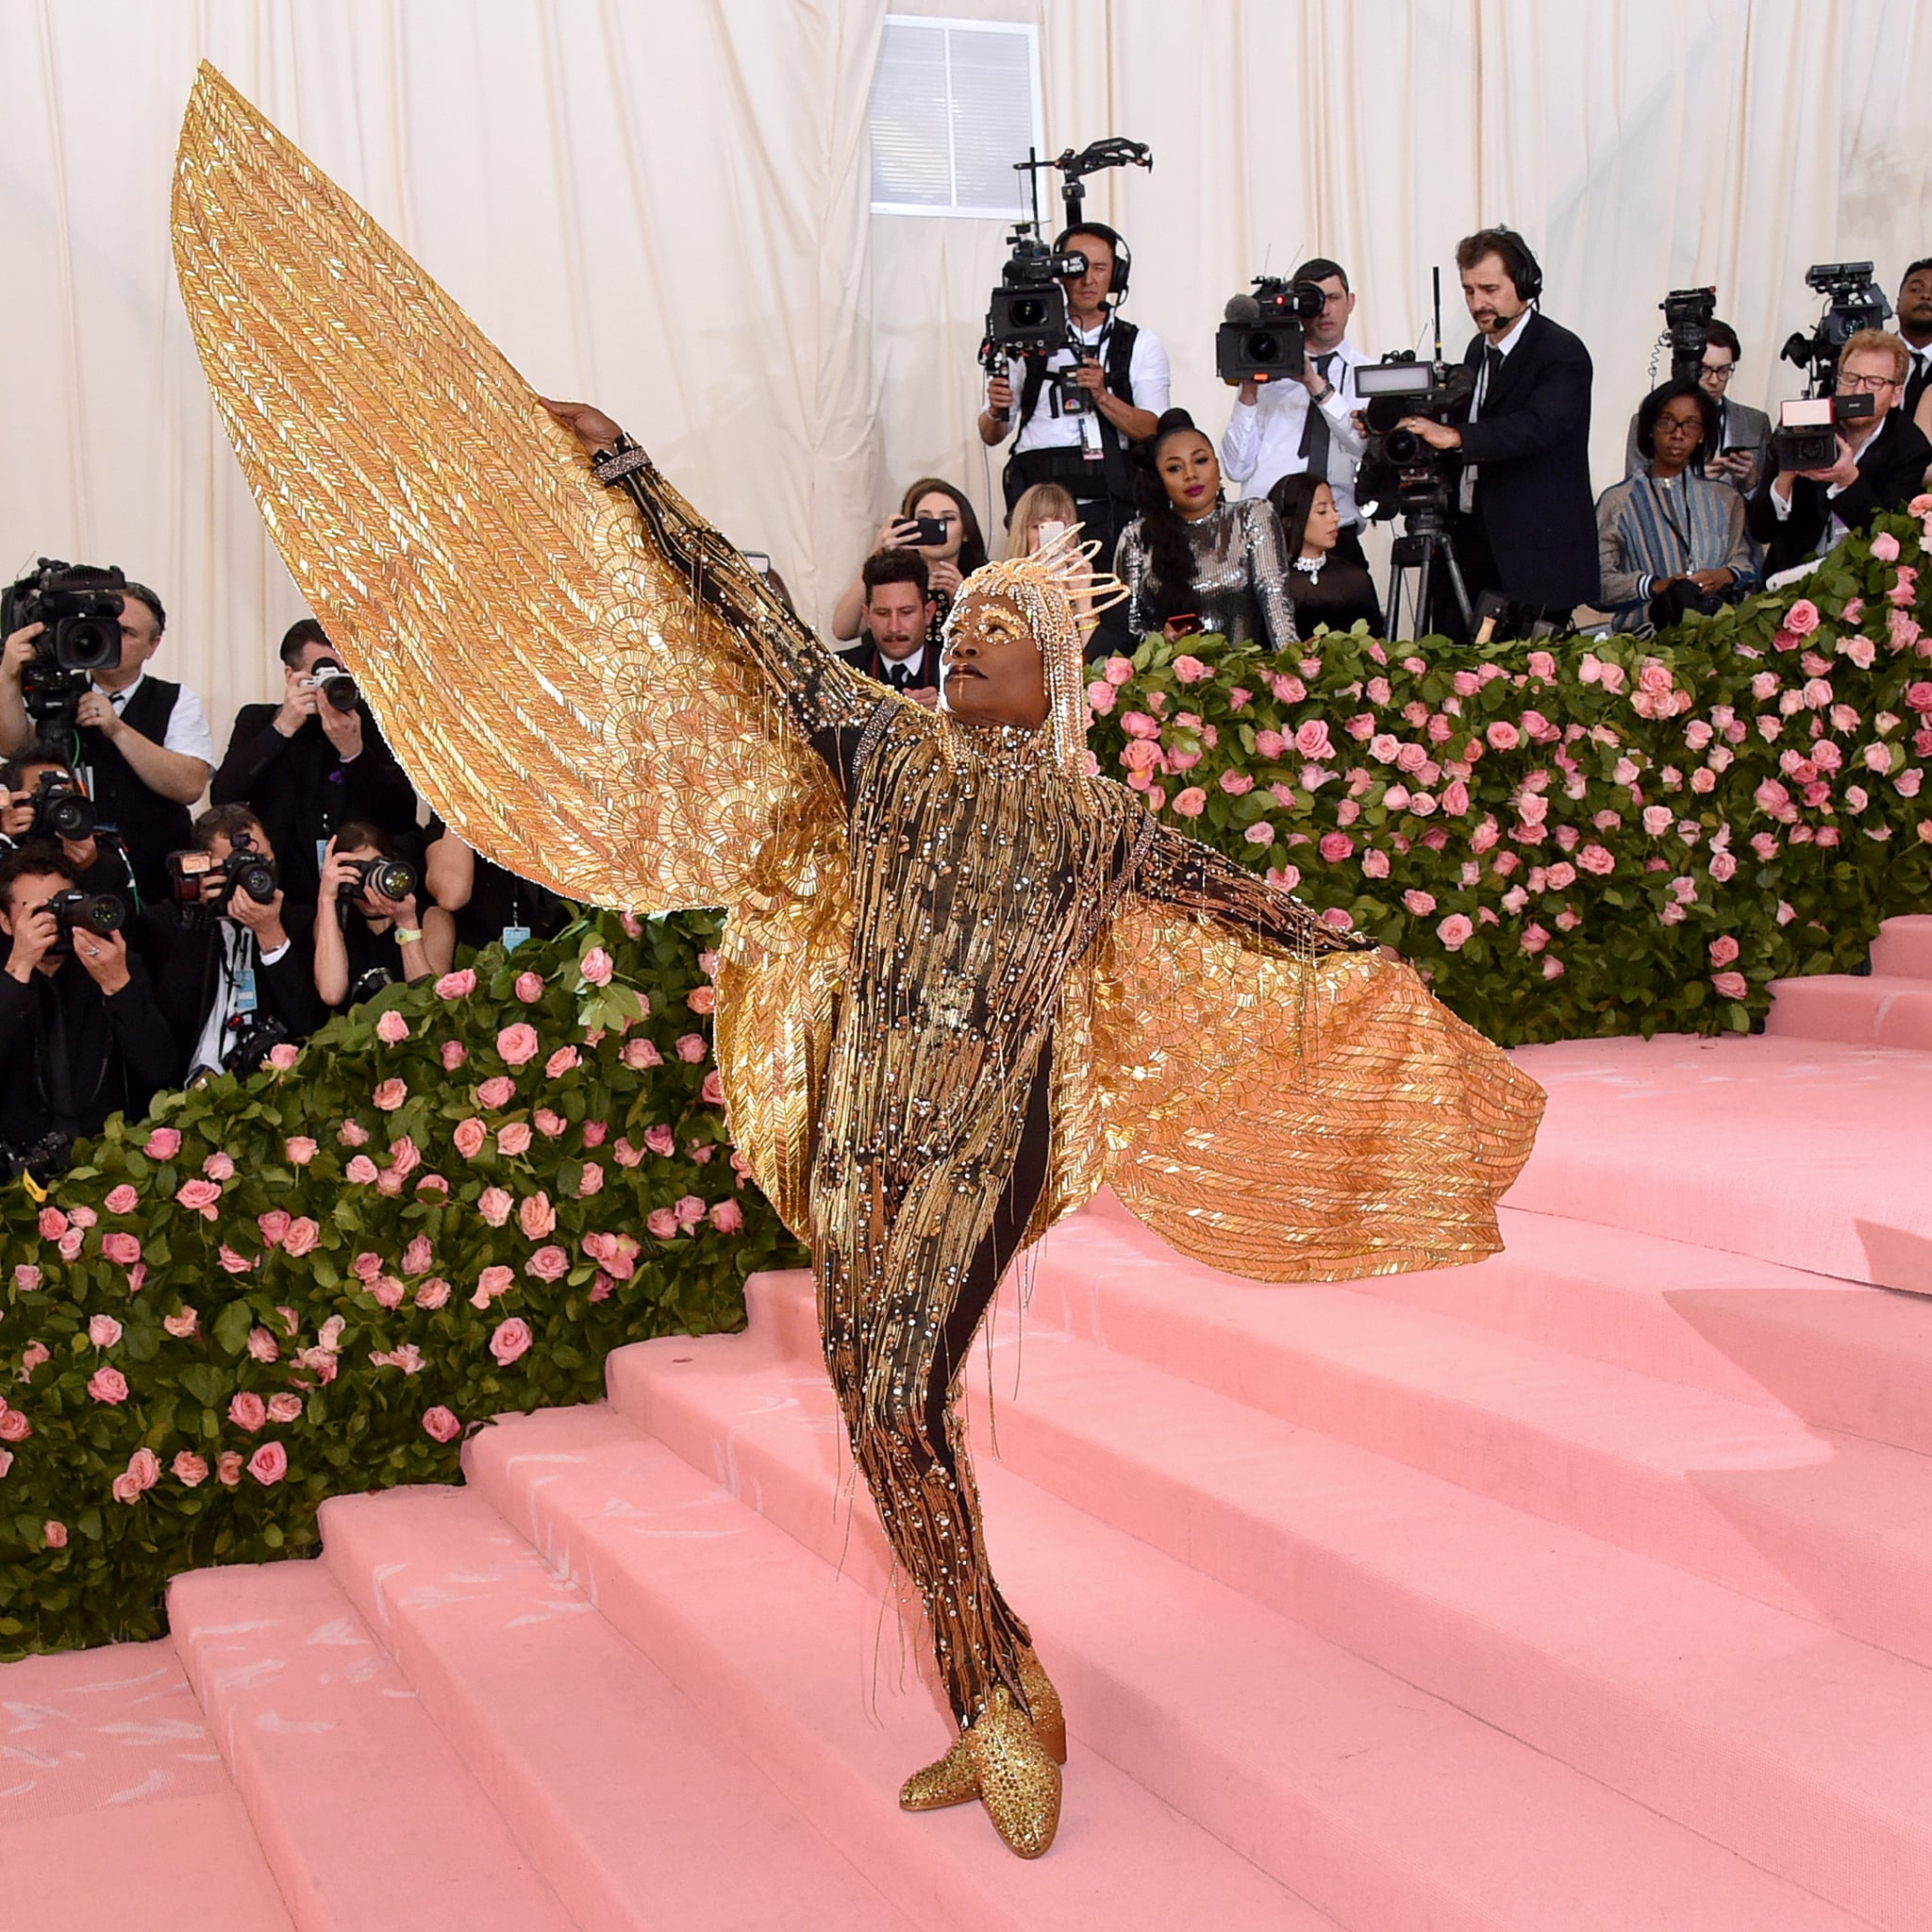 """Billy Porter in his """"Sun God"""" outfit designed by The Blonds. Photographed by John Schearer."""